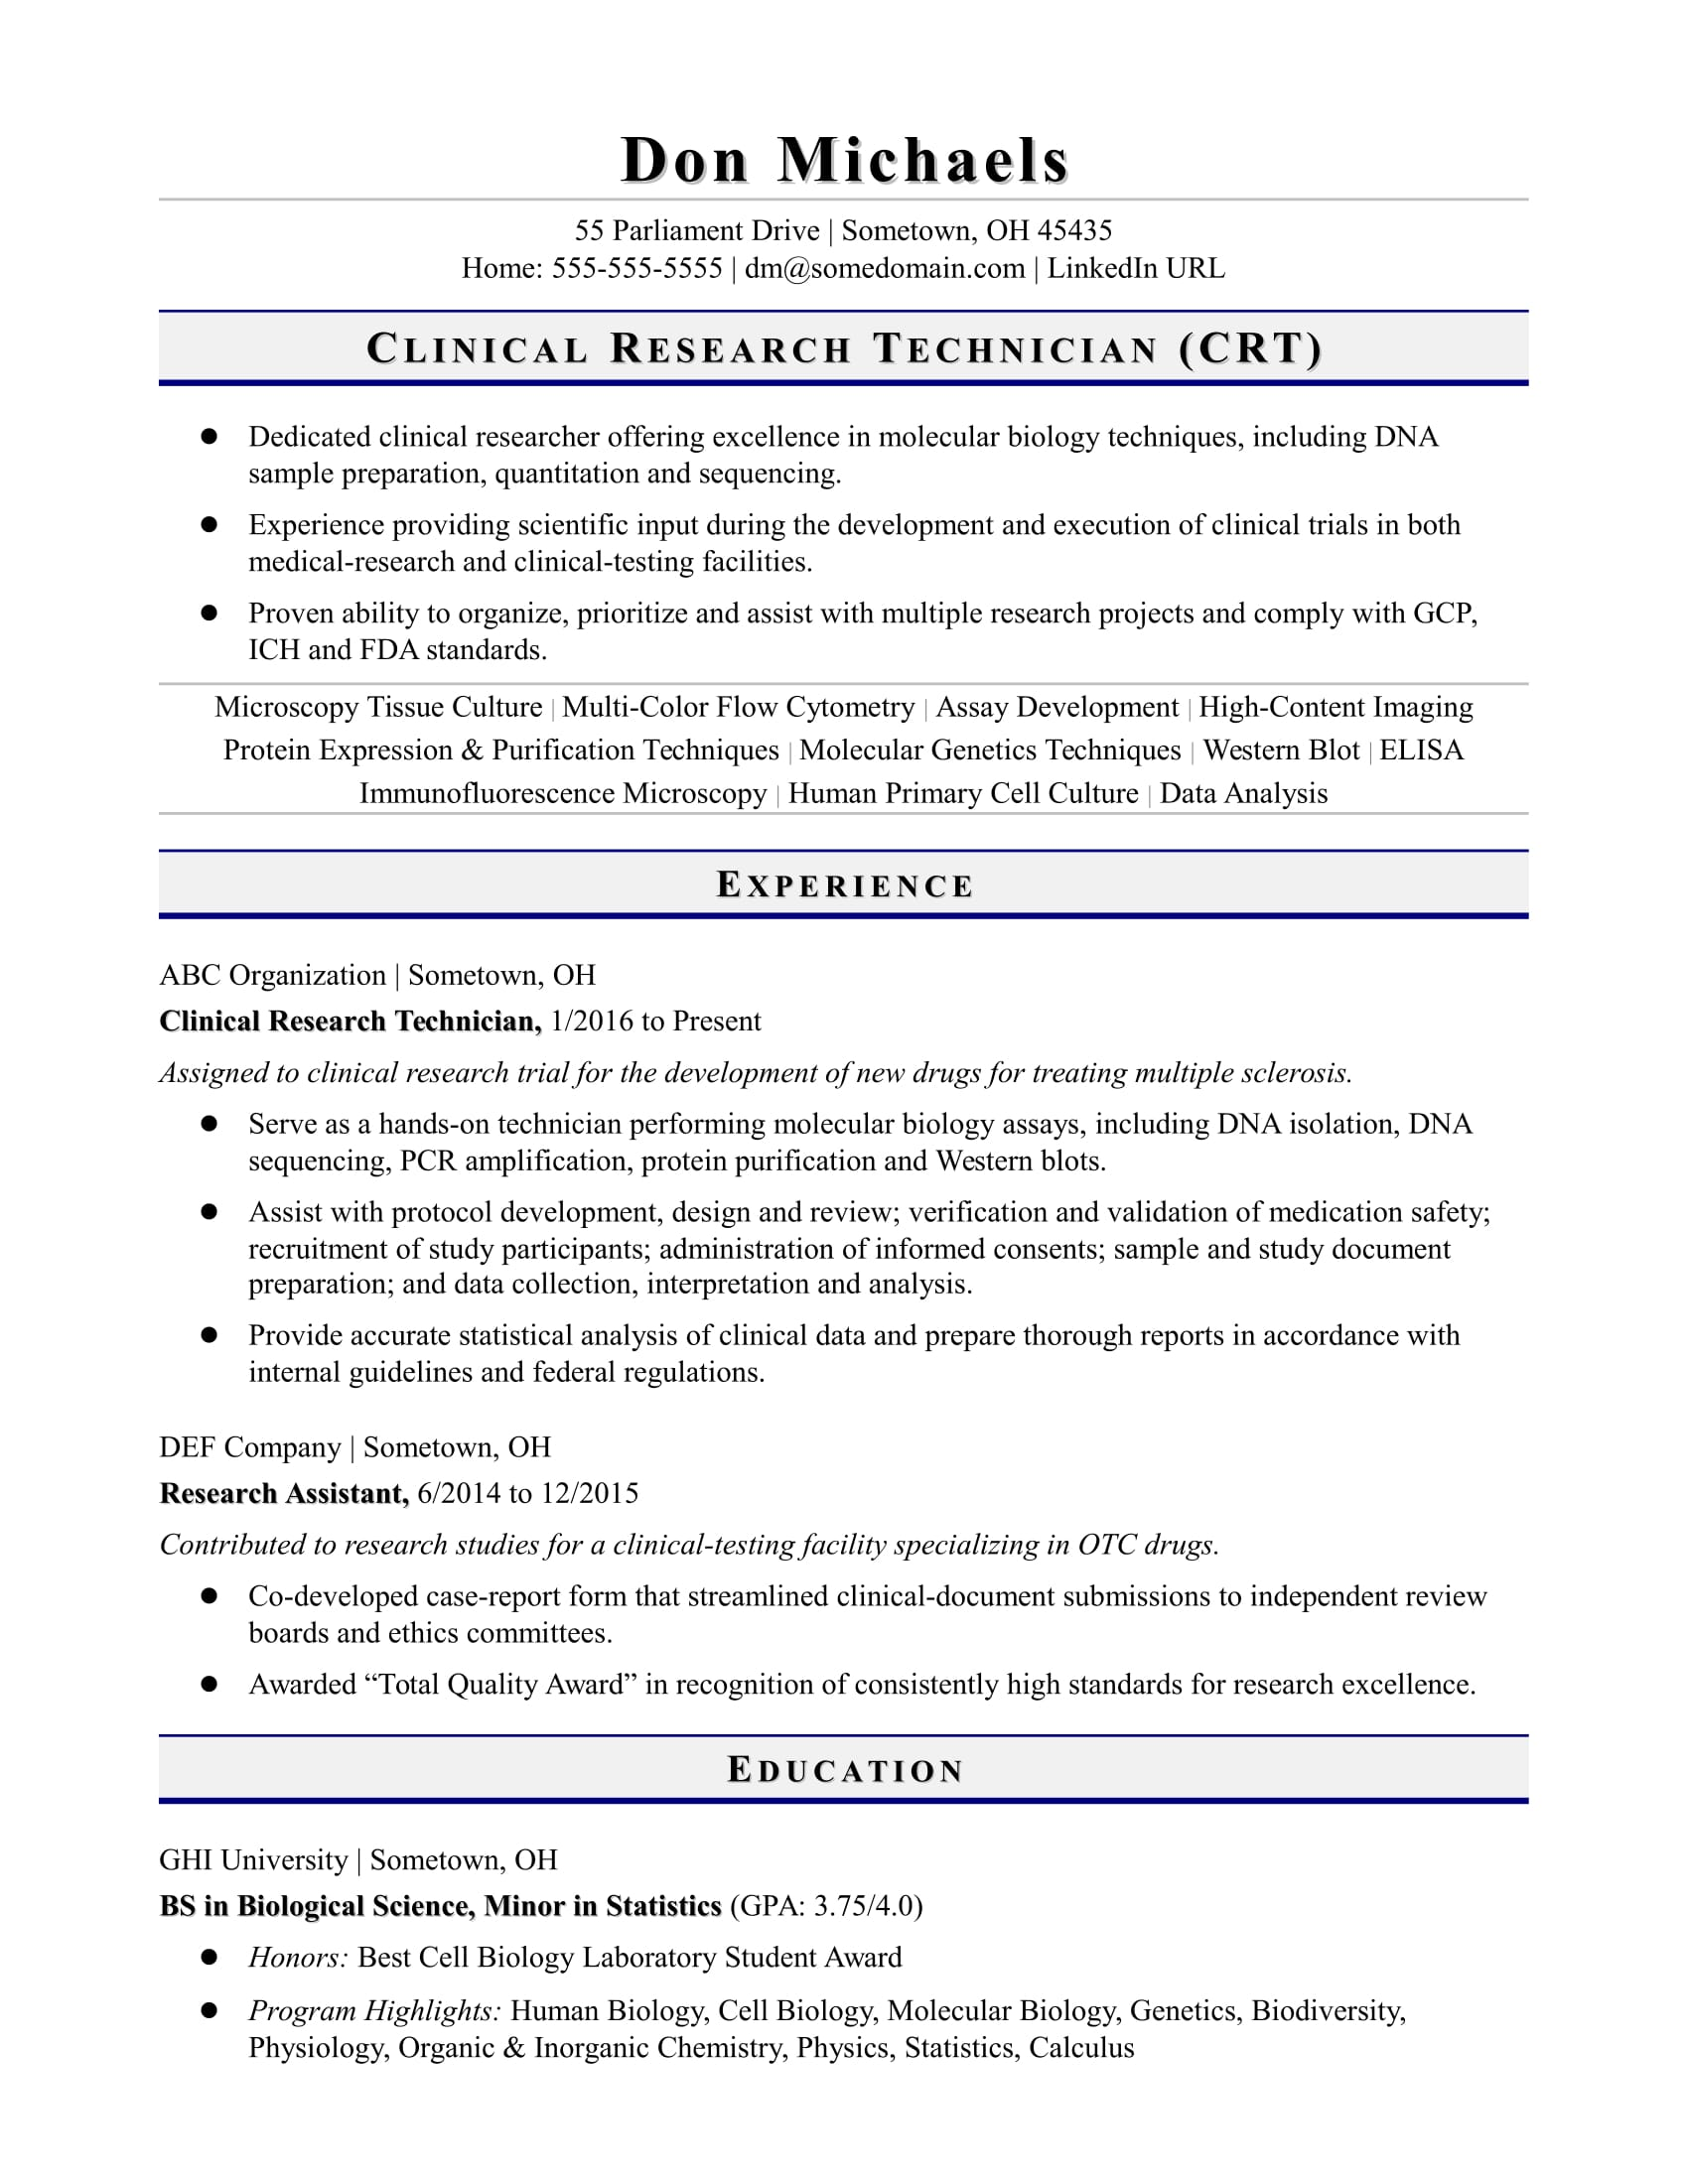 sample resume for an entry level research technician - Sample Resume With Research Experience